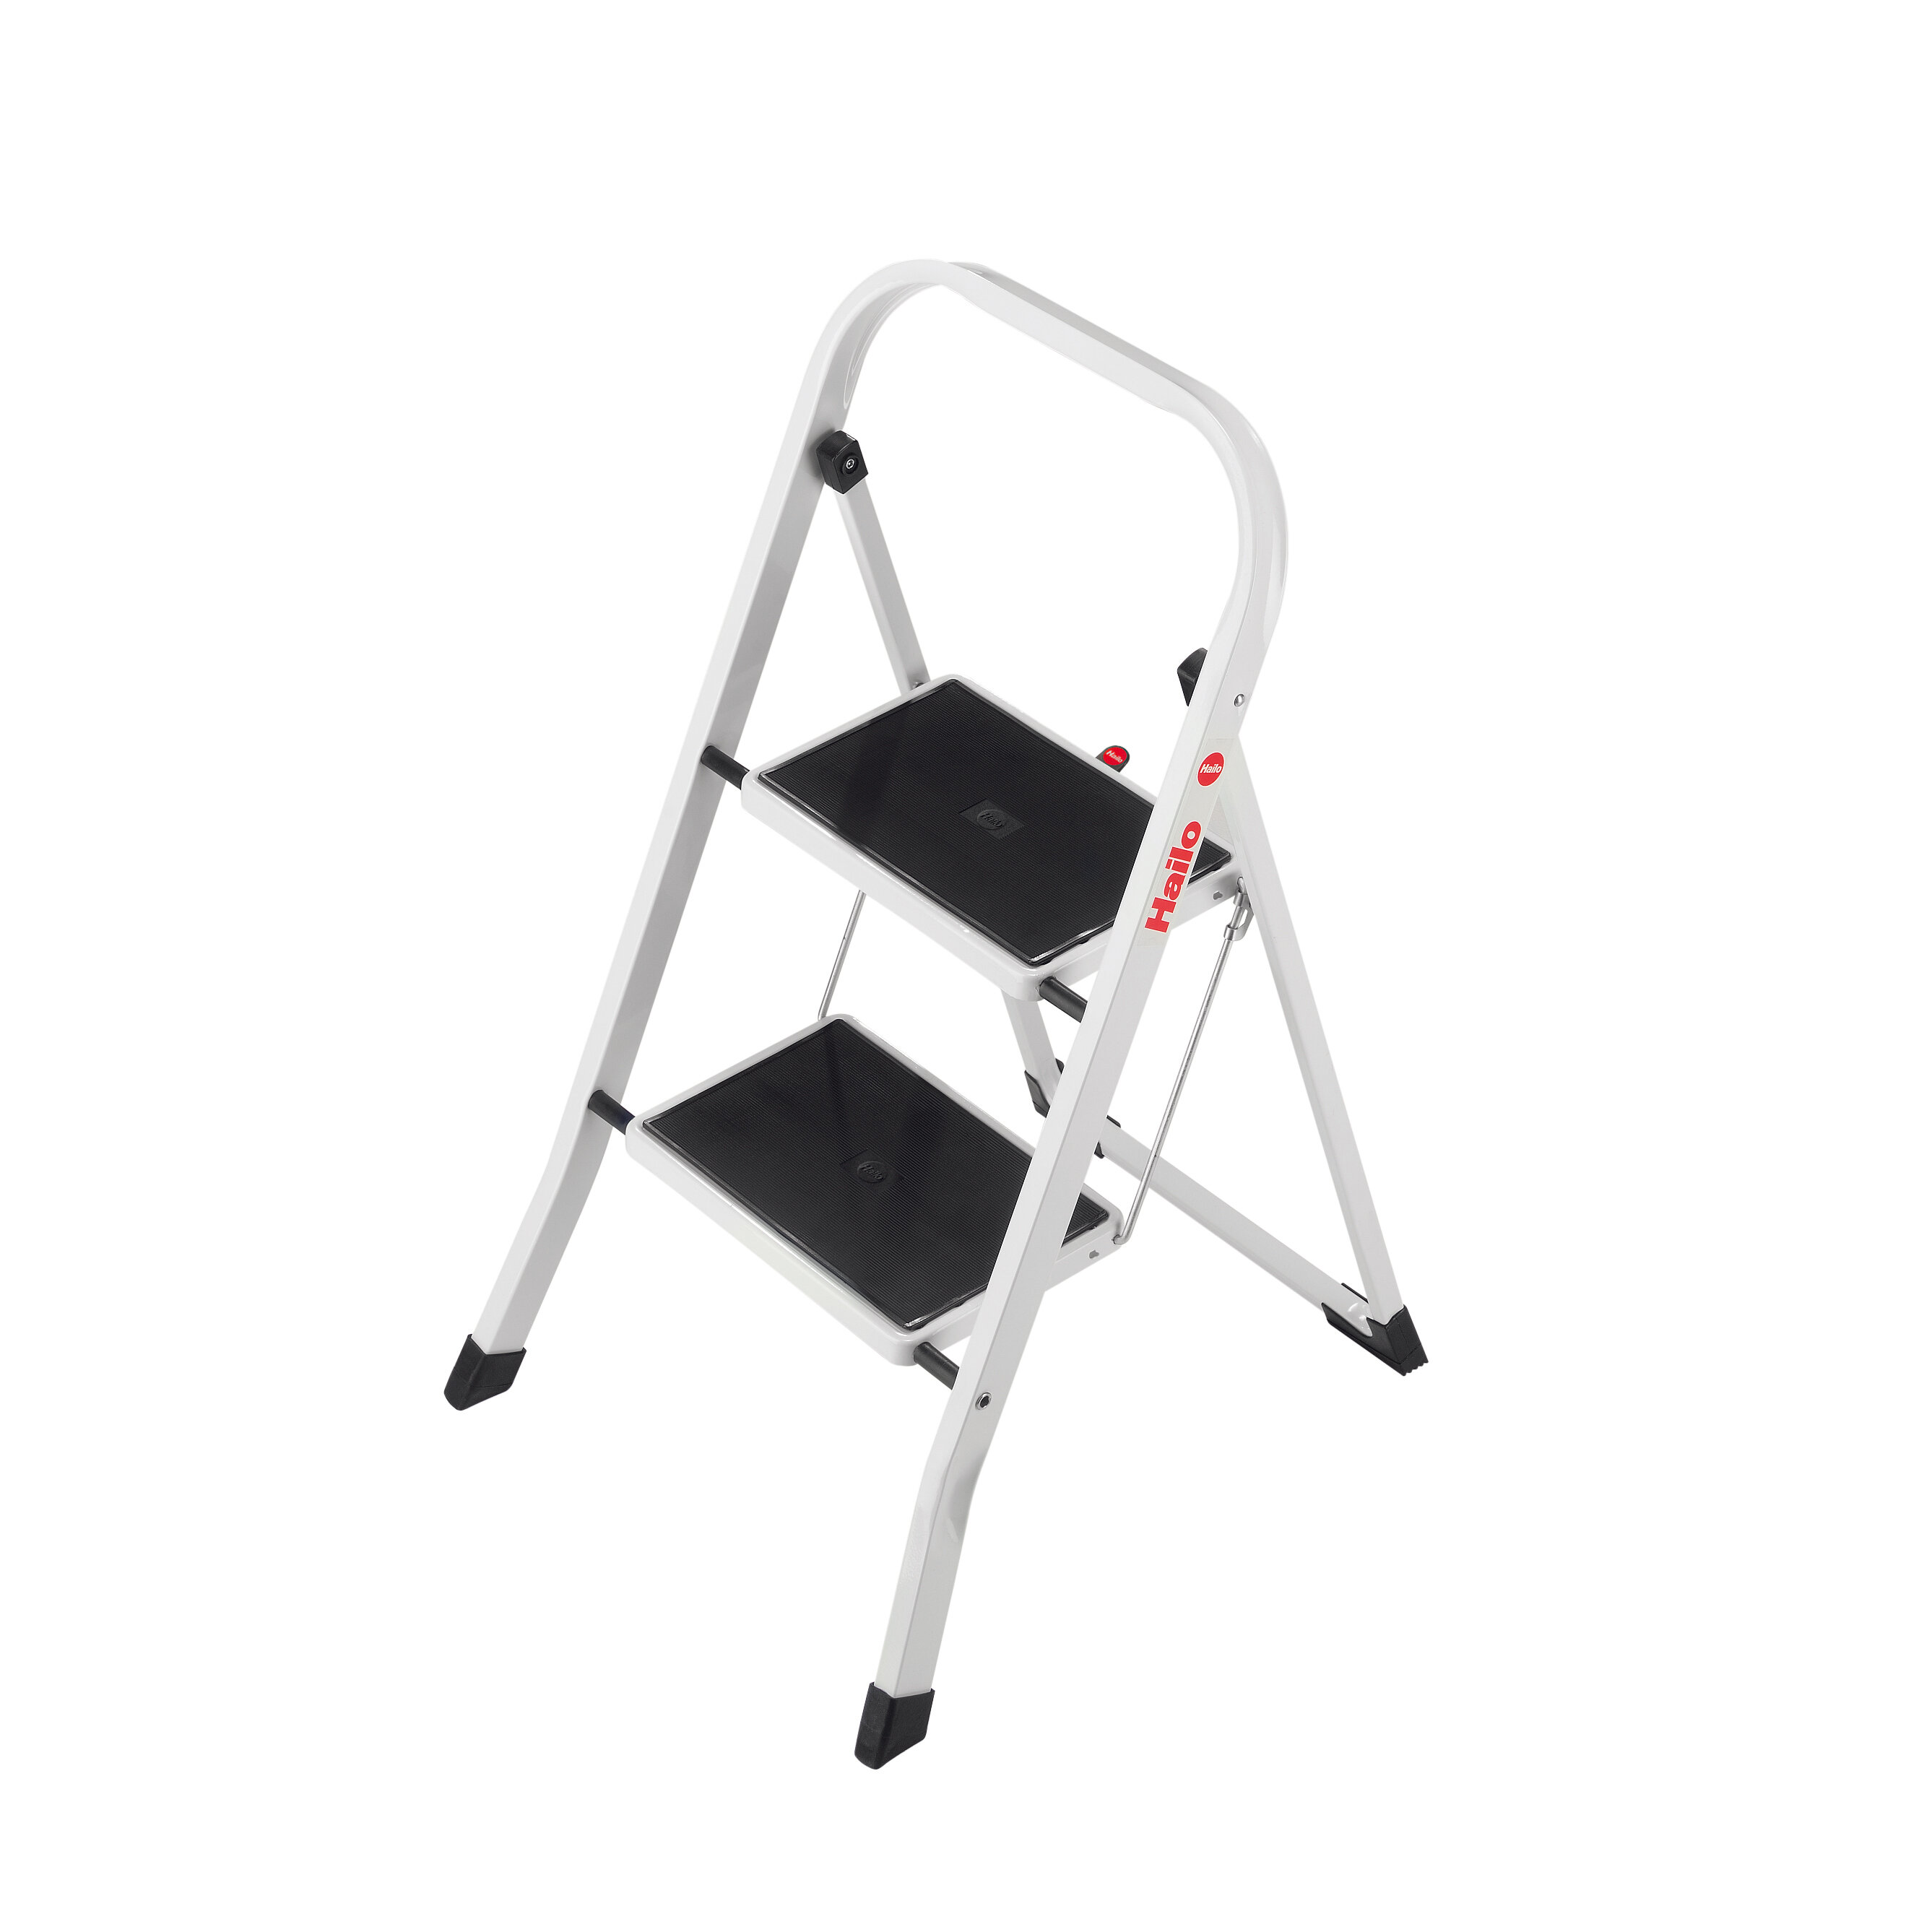 Fold-Up Step Stool Two Step Ladder 330 Lb Capacity Lightweight Safety Non Slip